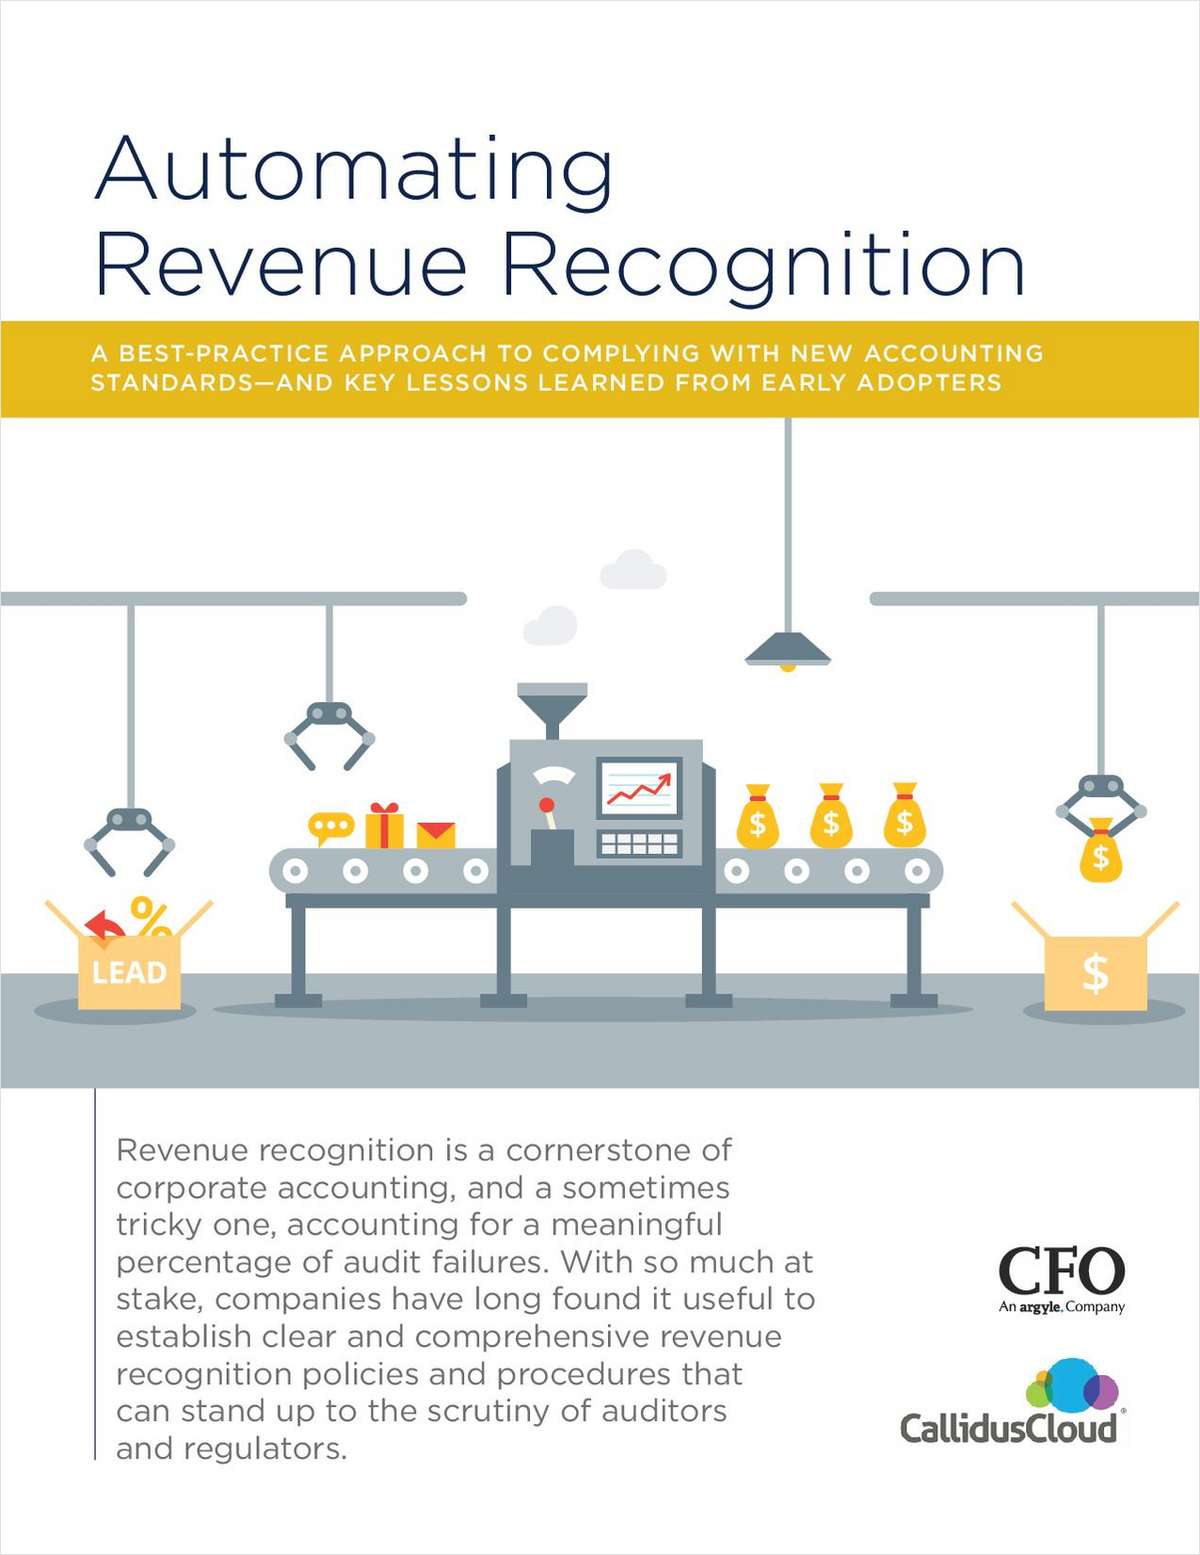 Automating Revenue Recognition